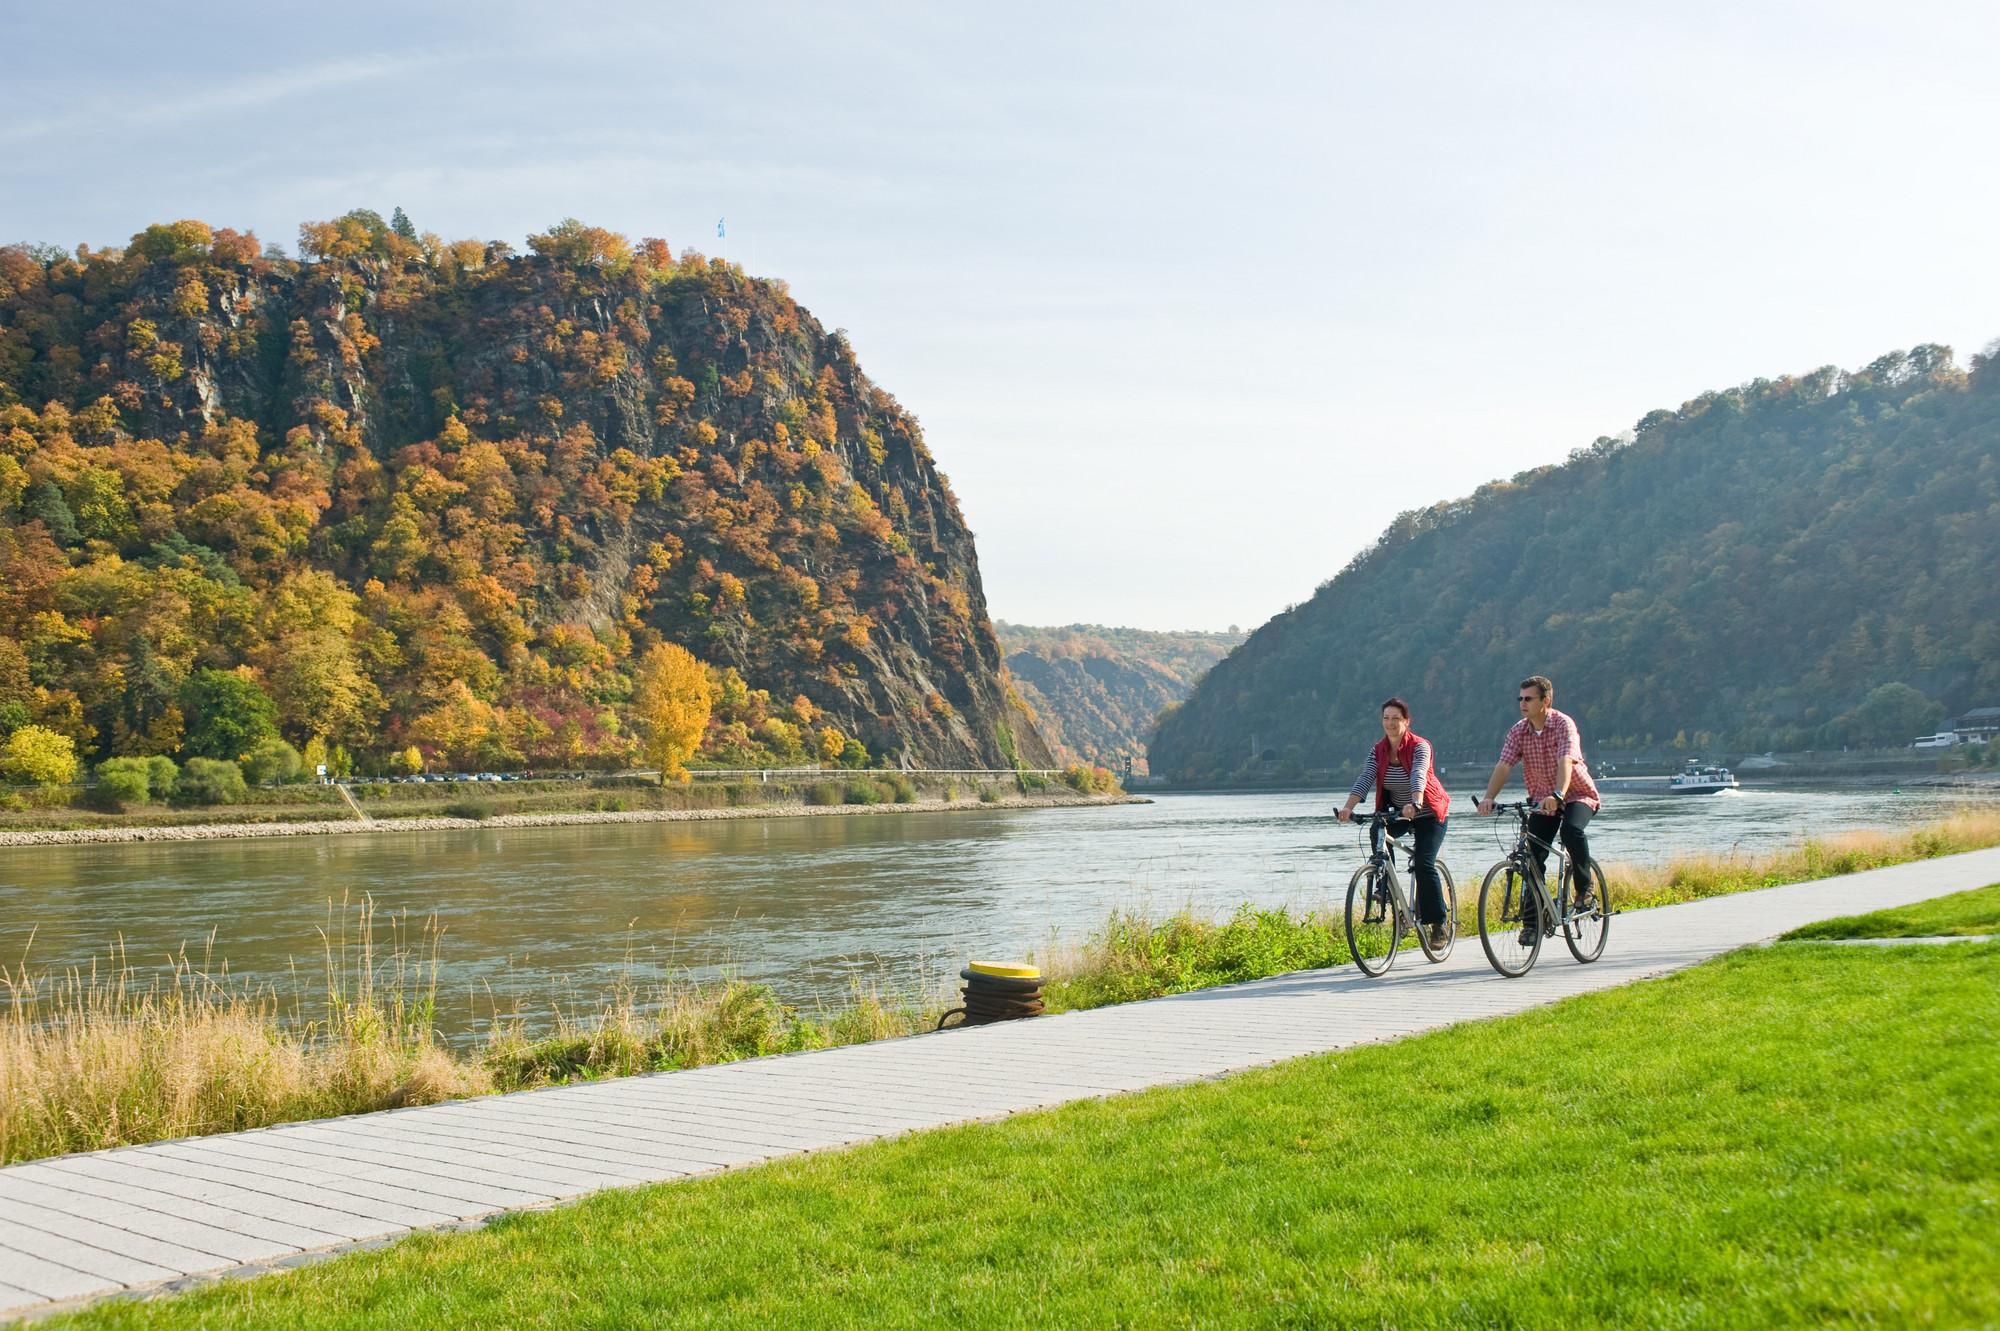 Following the river, the Rhine Cycle Route passes the Loreley Rock. – © Dominik Ketz / Romantischer Rhein Tourismus GmbH